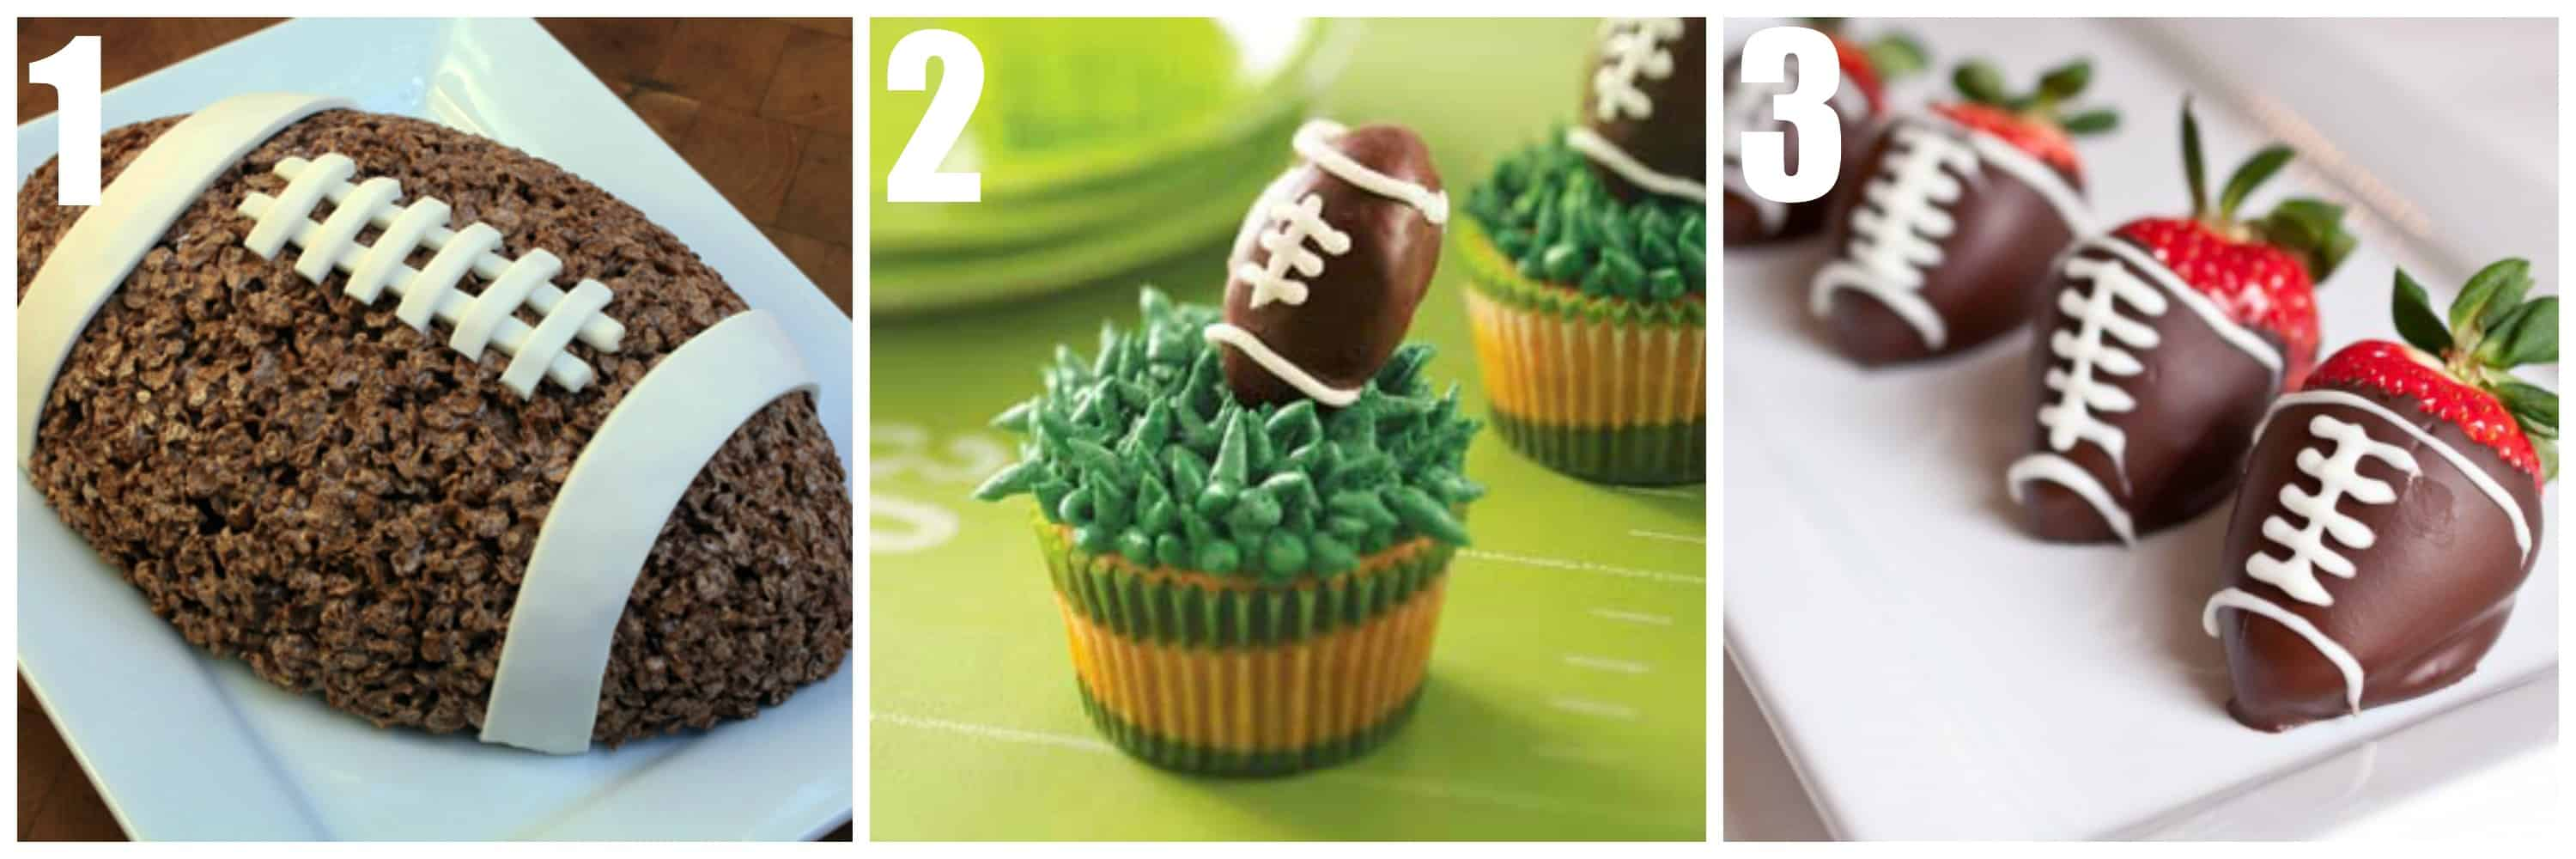 Football Shaped Treats